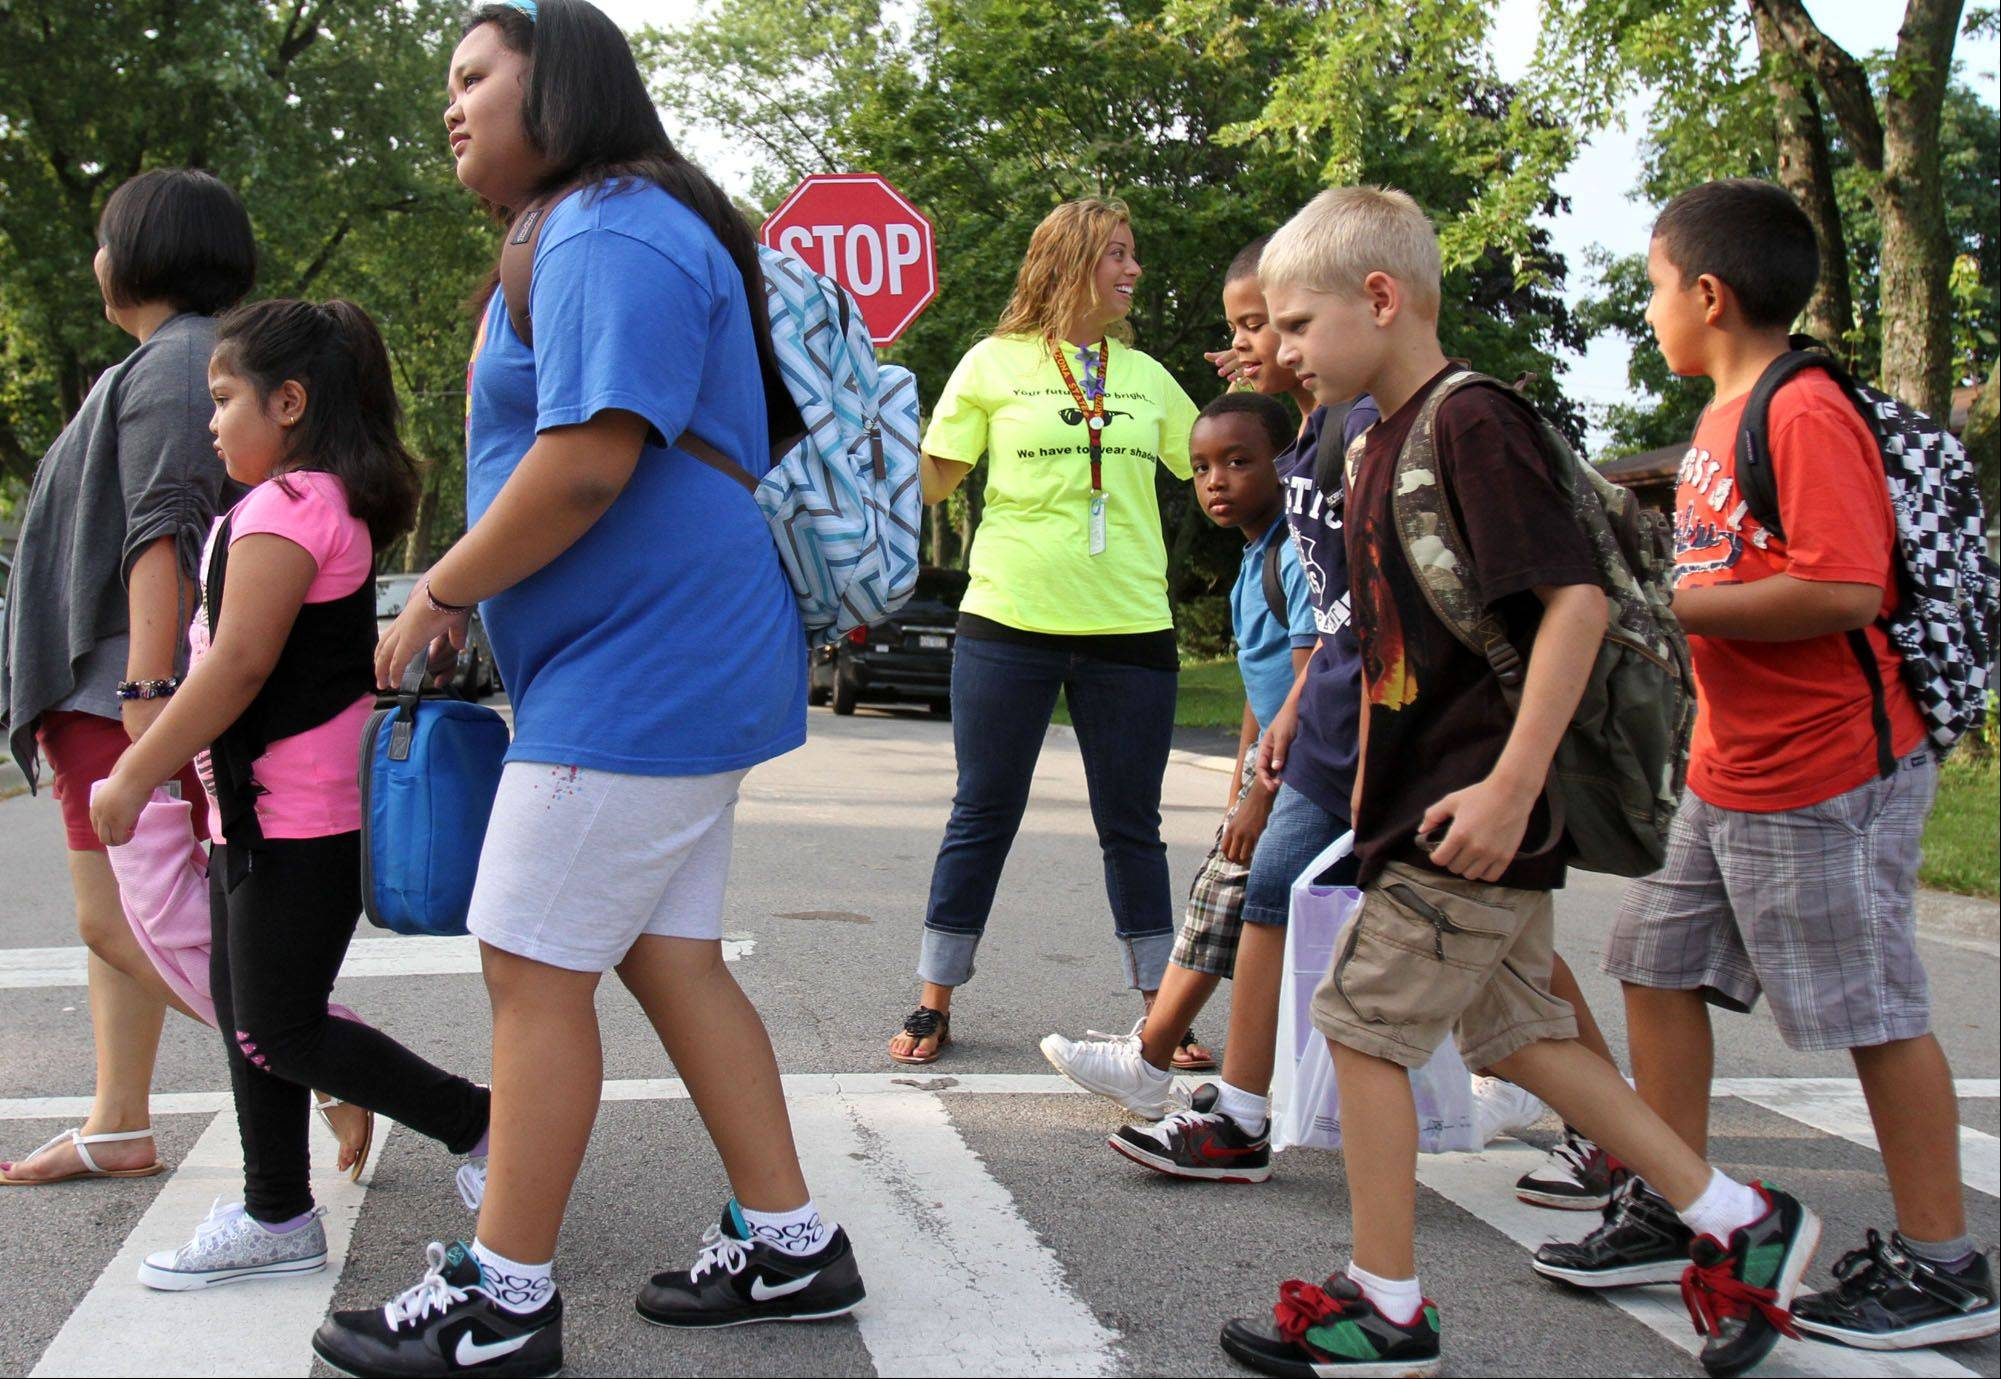 Speech teacher Amanda Kaiz helps students crossing the street to Anne Fox School on the first day of school in Hanover Park on Wednesday.